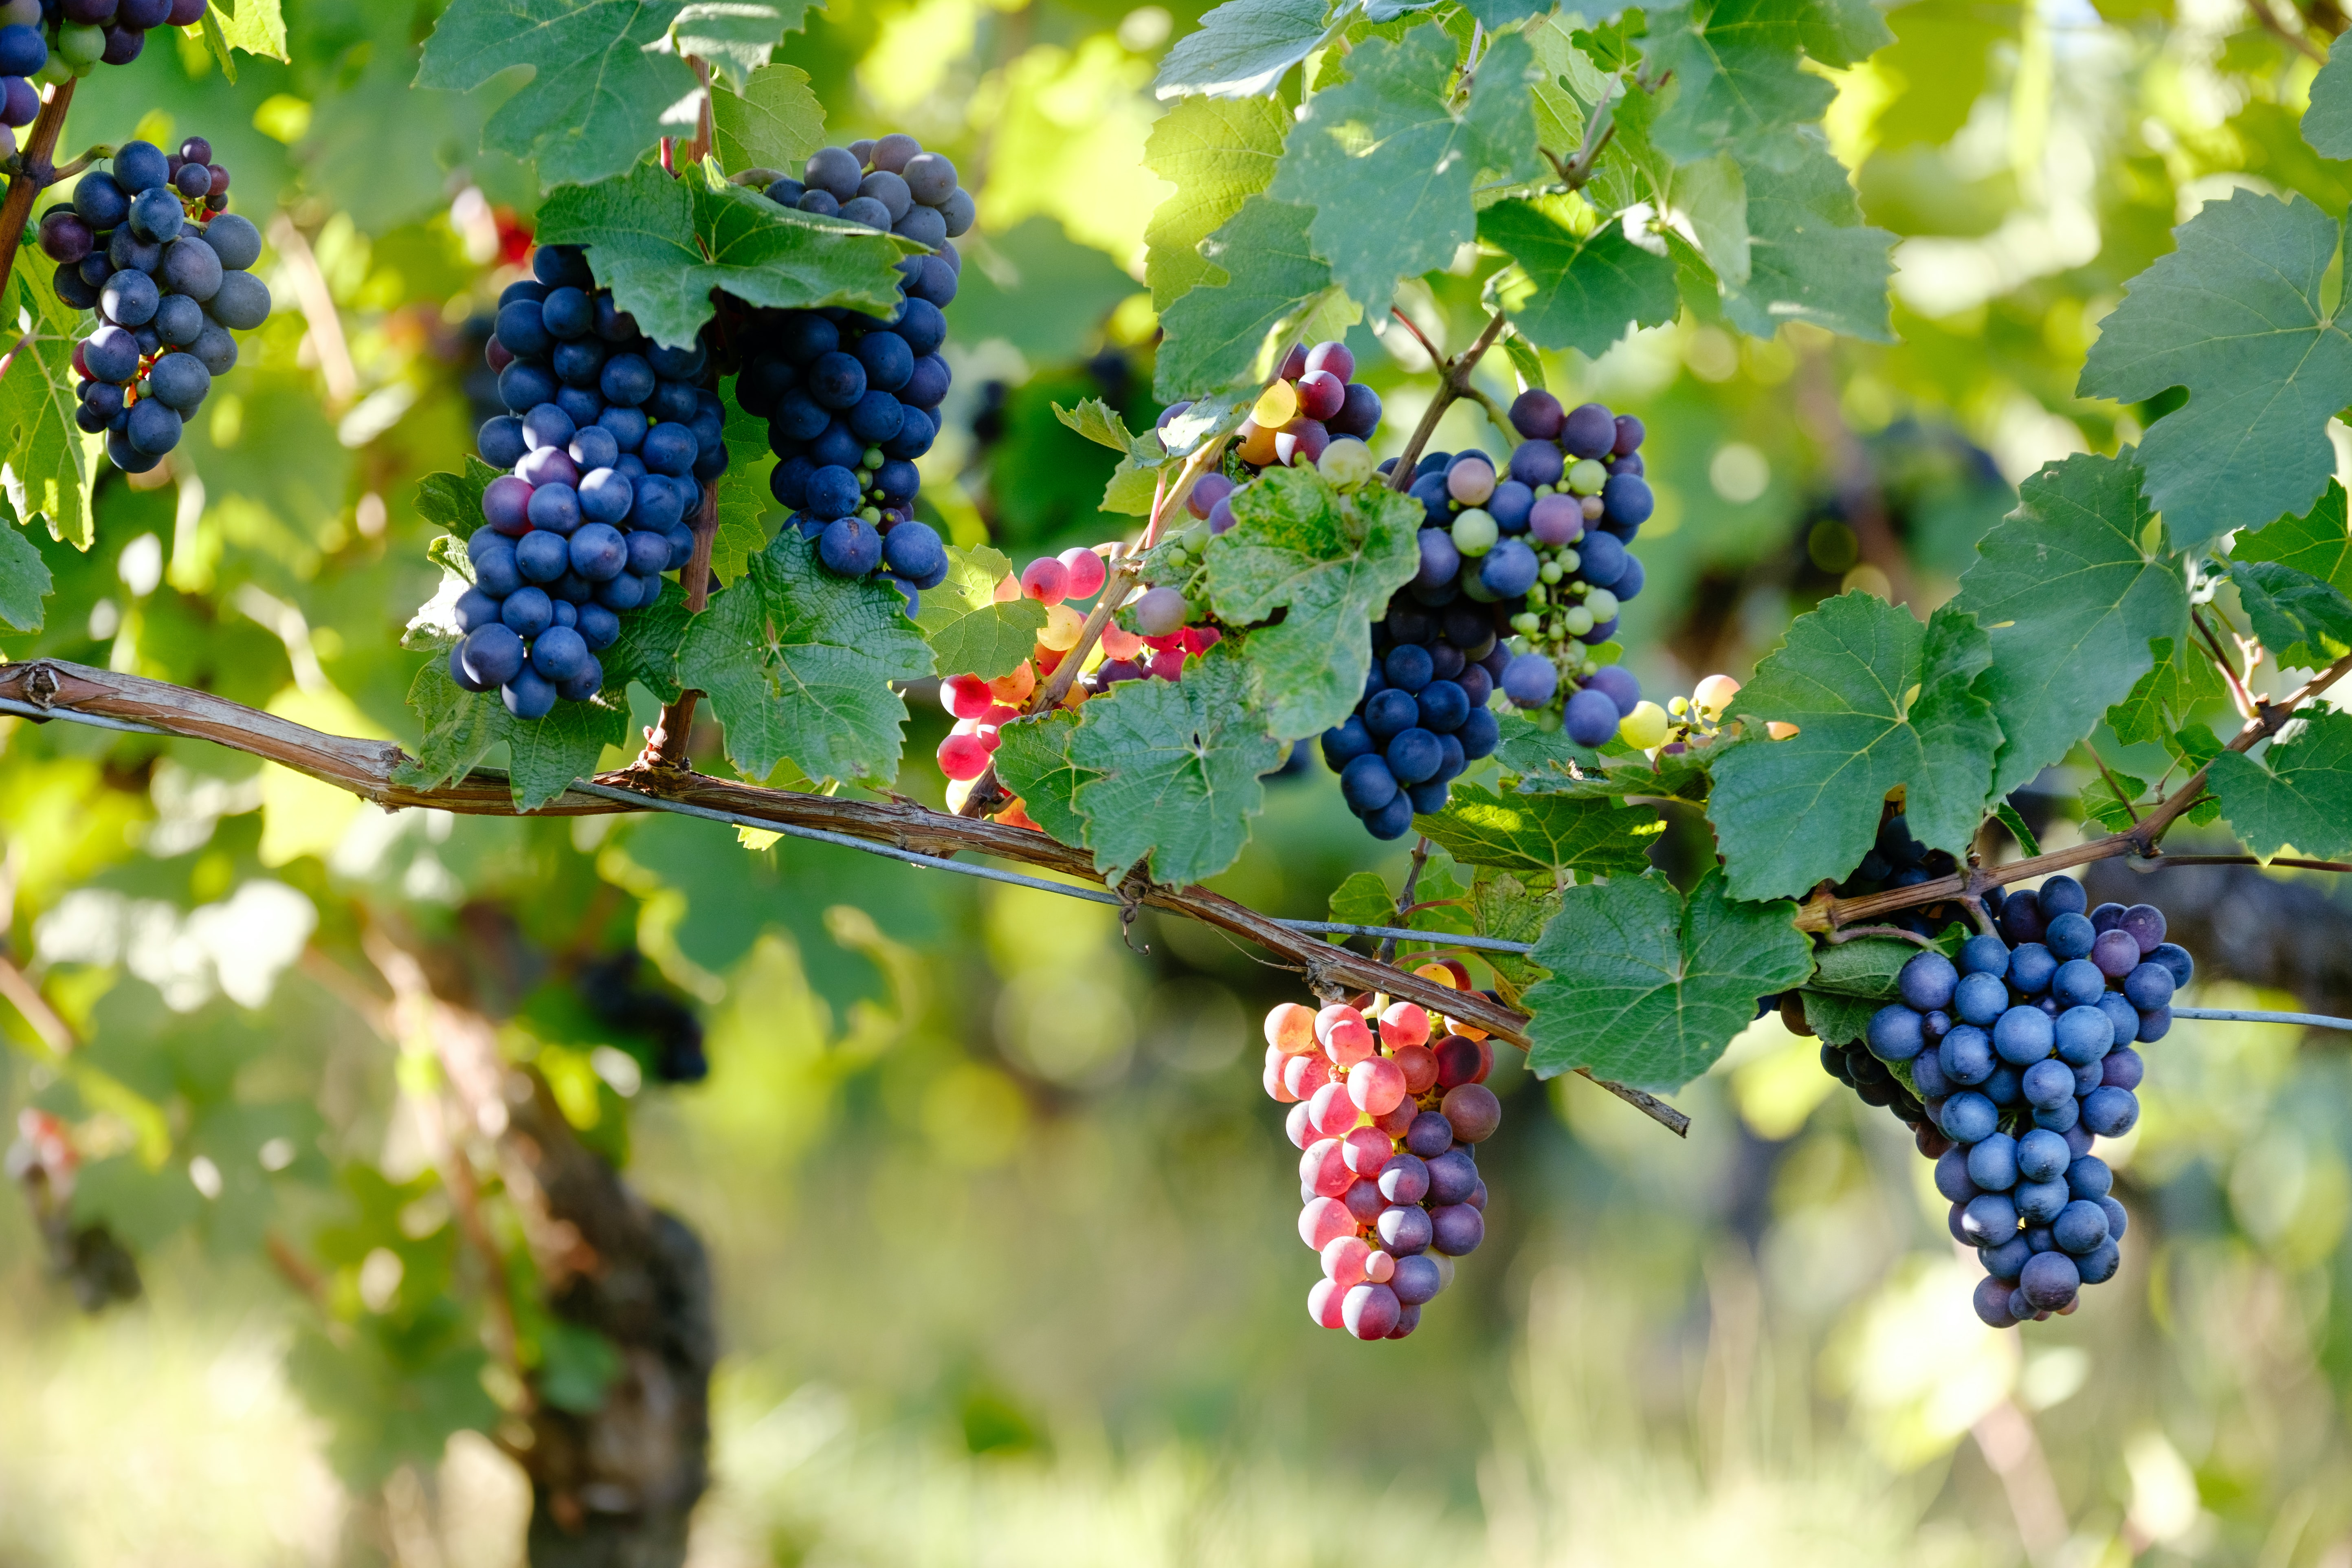 Wild grapes grow on a vine in a wine vineyard